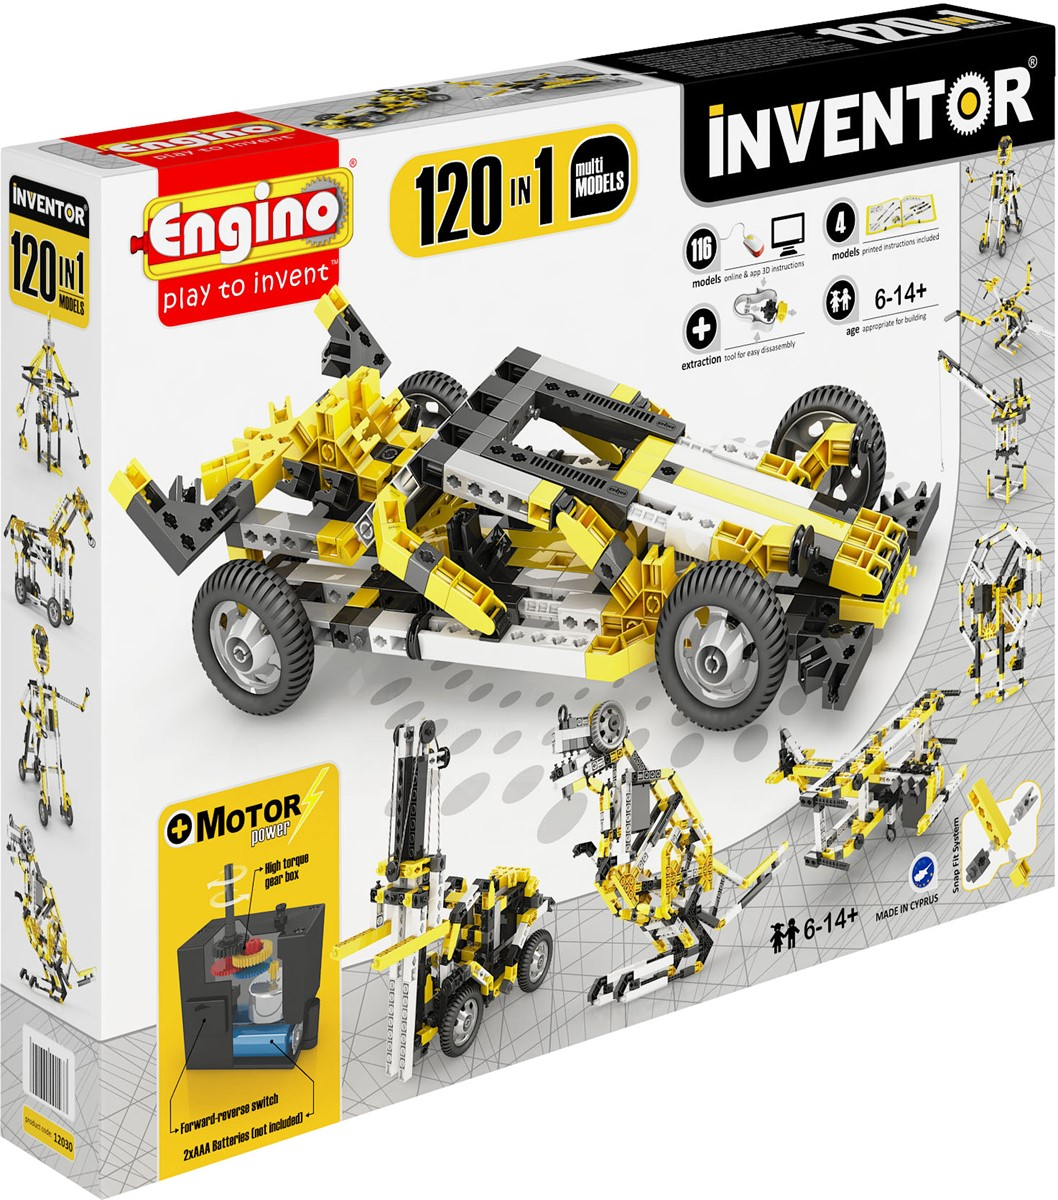 12030 INVENTOR 120 MODELS MOTORIZED SET